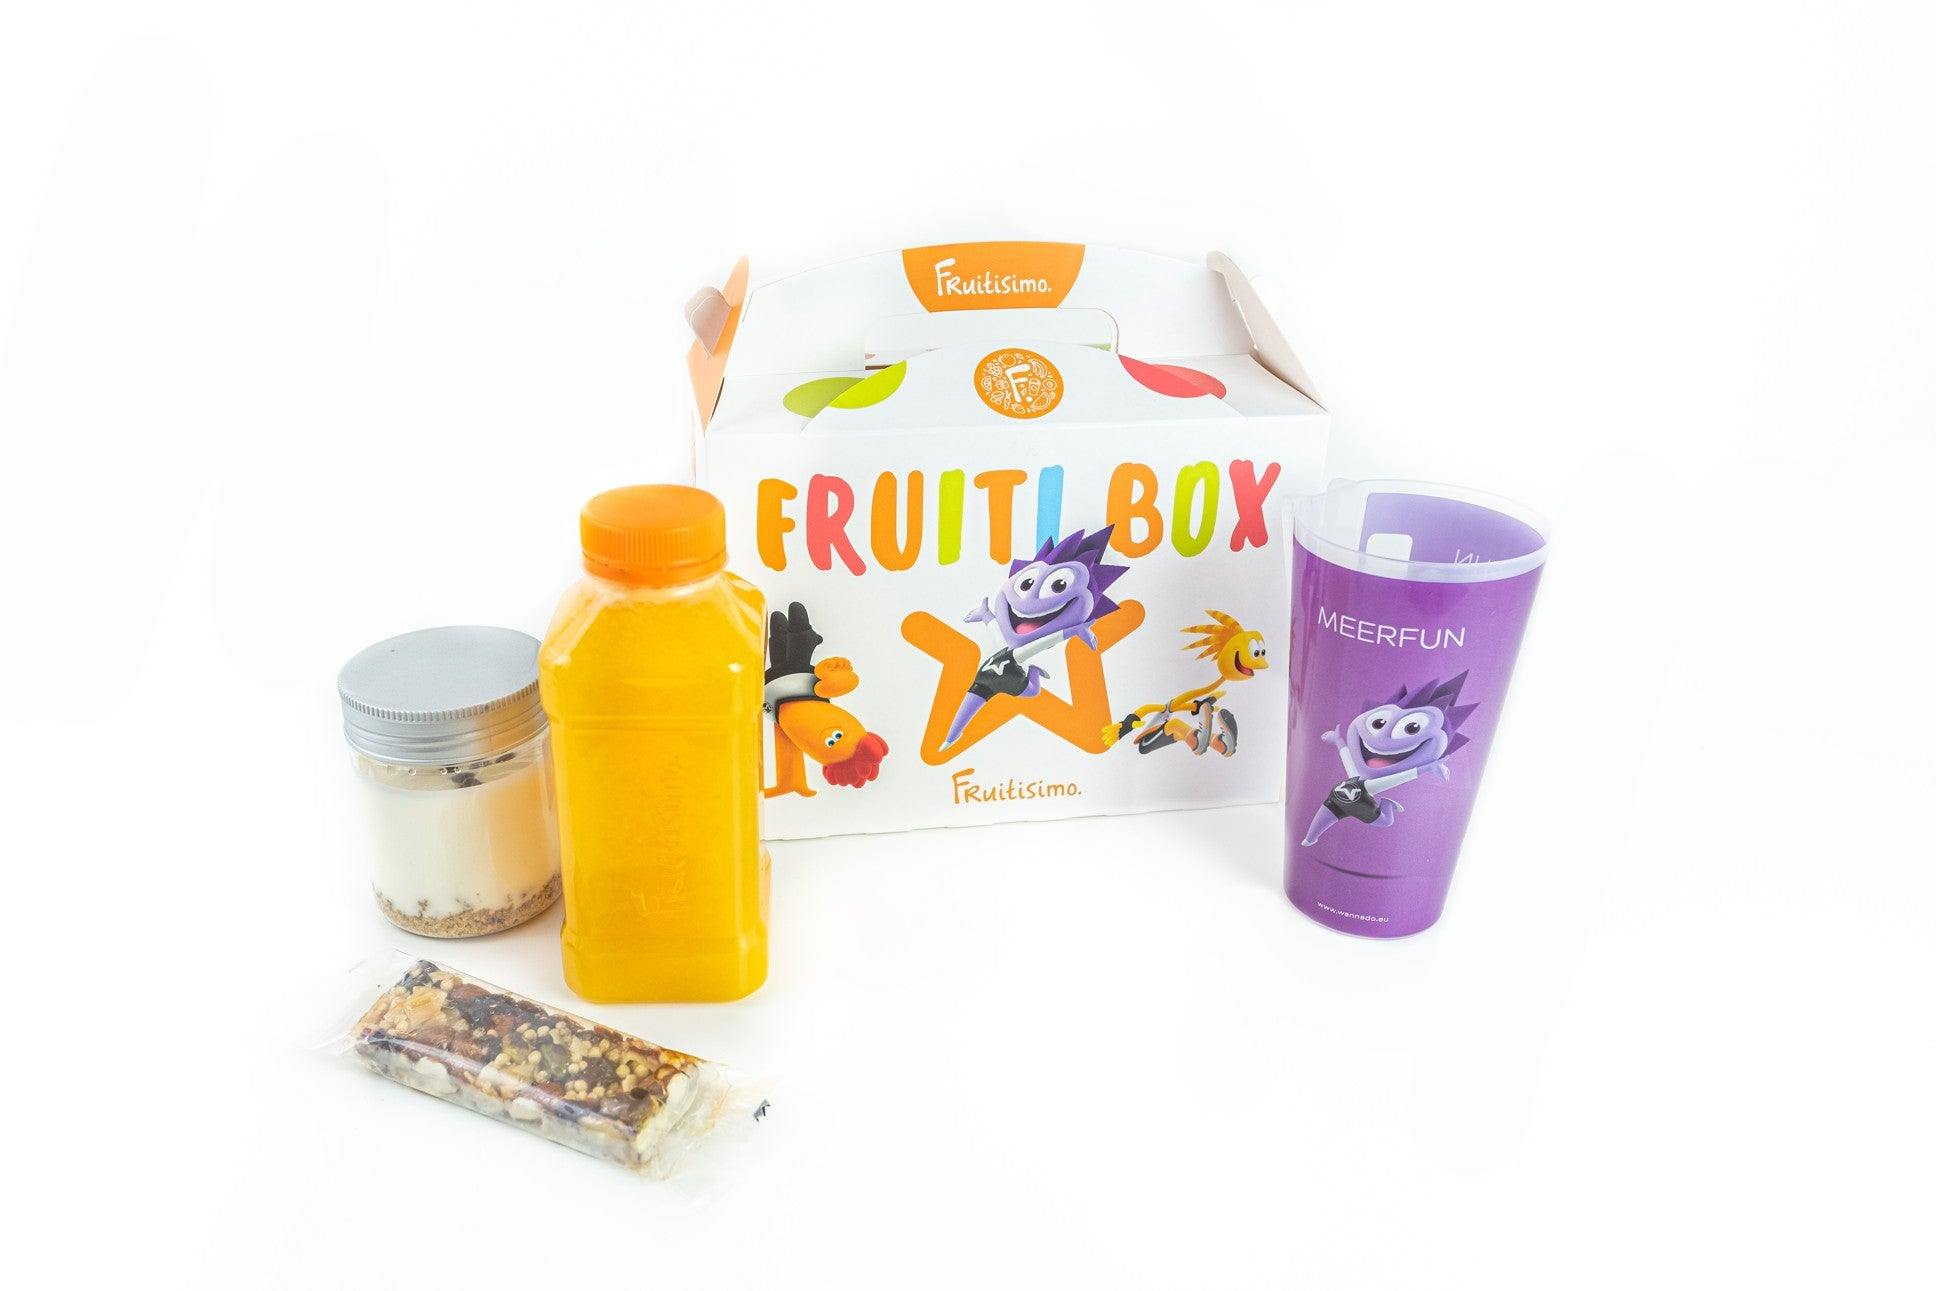 FRUITI BOX MEERFUN